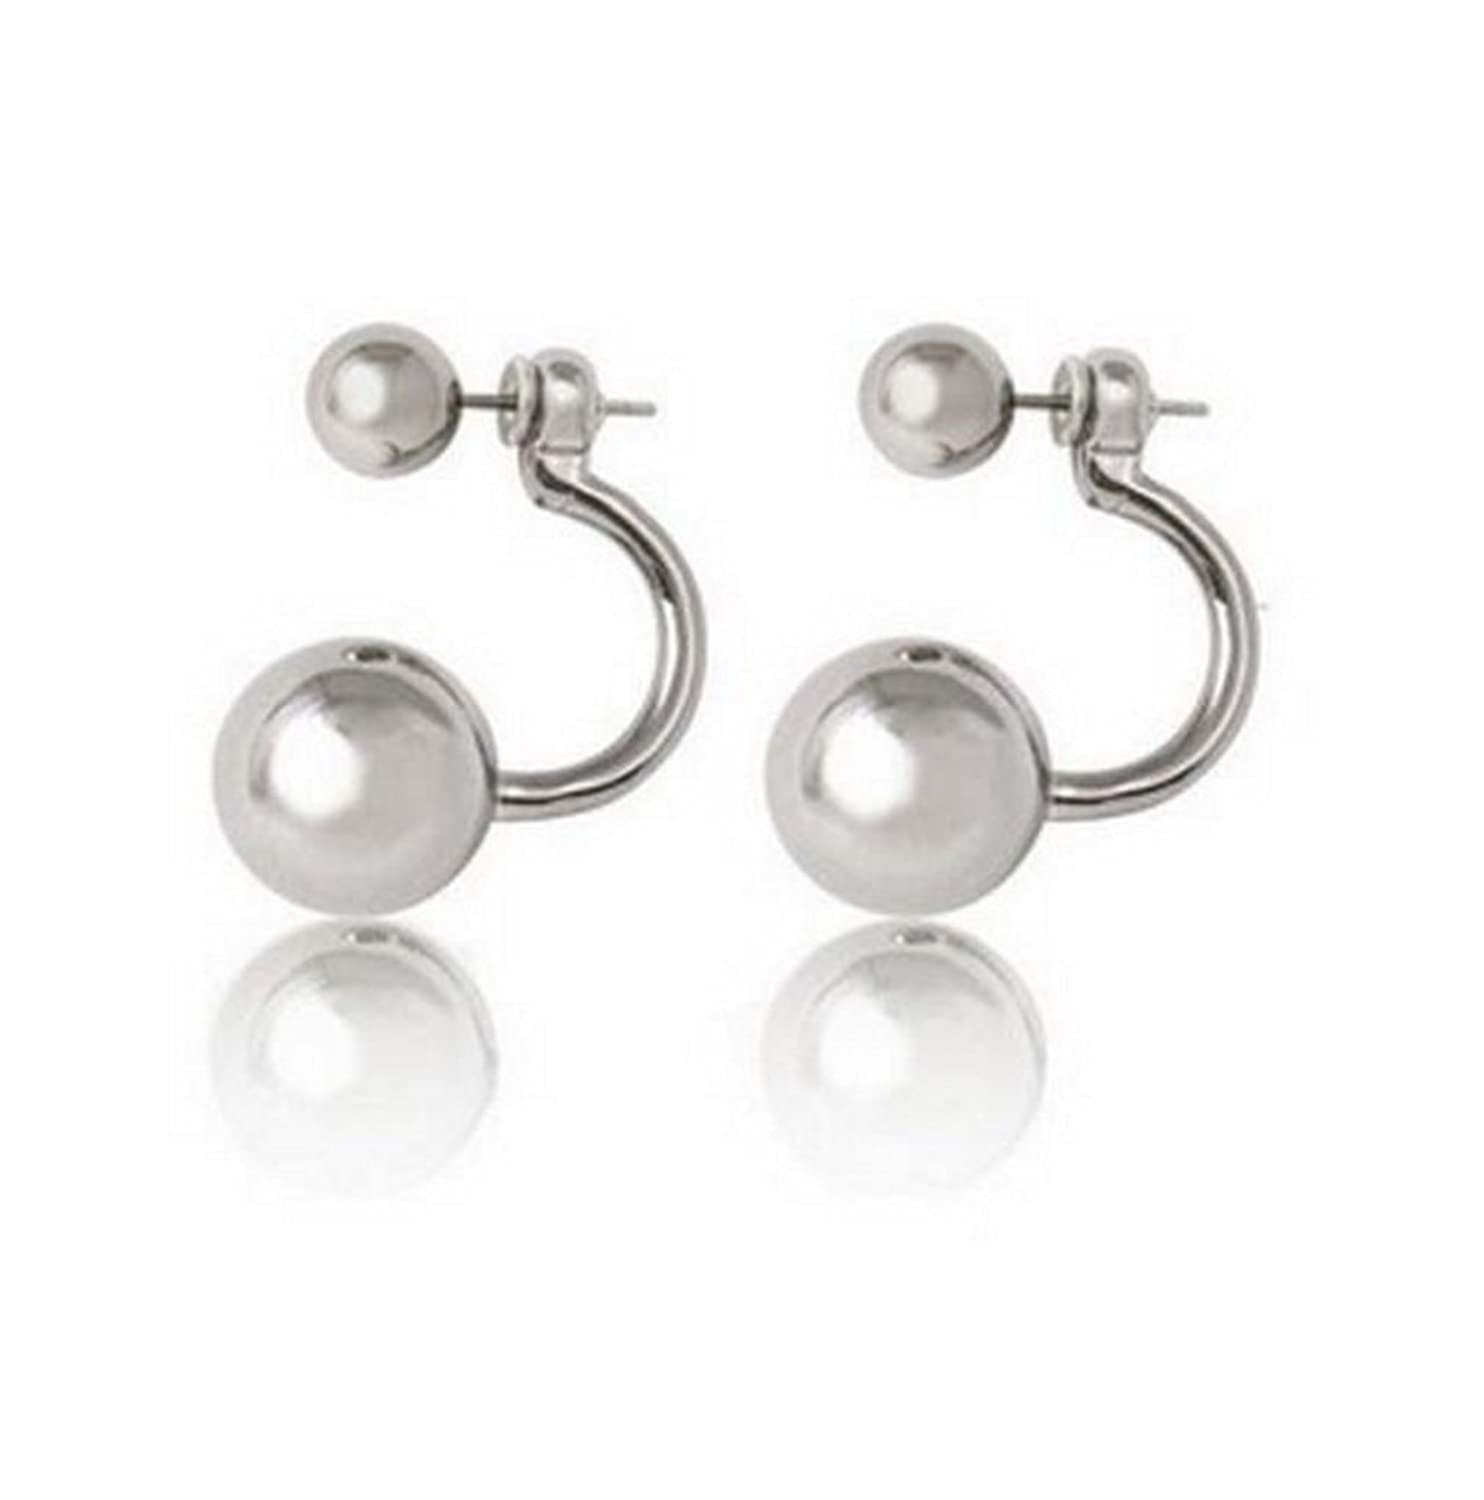 Affordable Wedding Jewelry Silver Tone New Trend Double Sided Ear Jacket Ball Stud Earrings